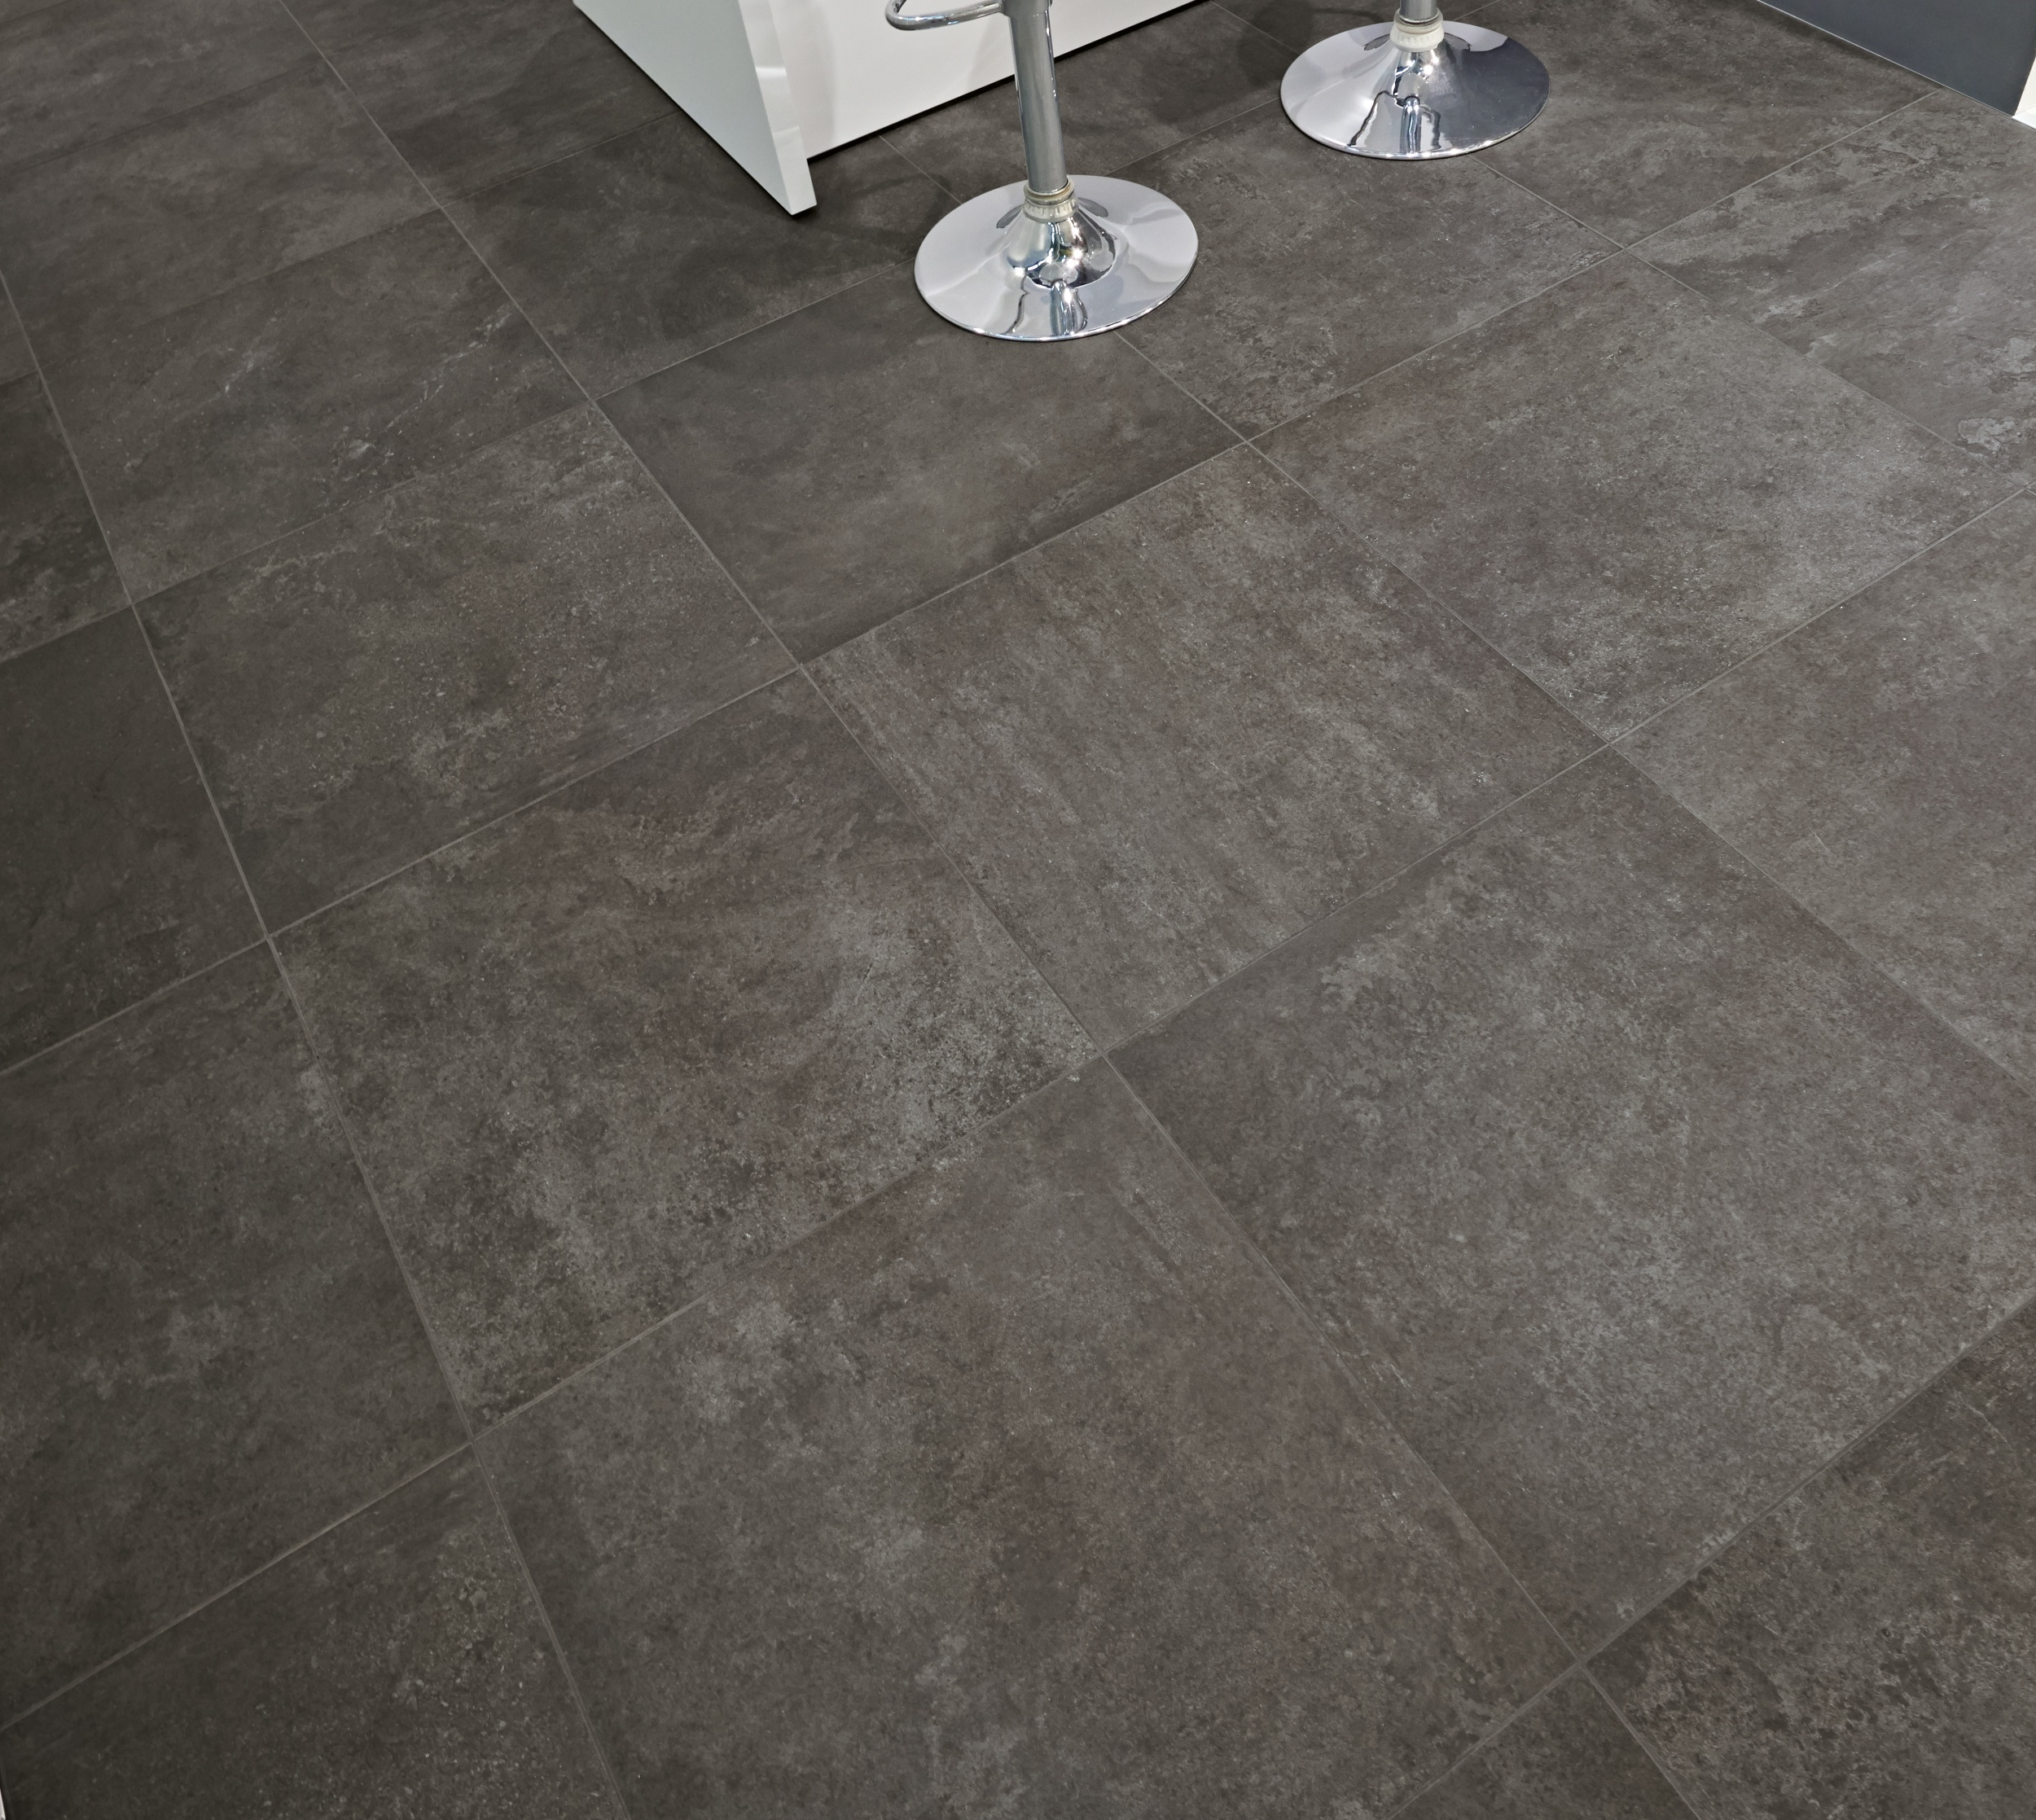 Graphite Natural Porcelain Tile From Our Heritage Tile